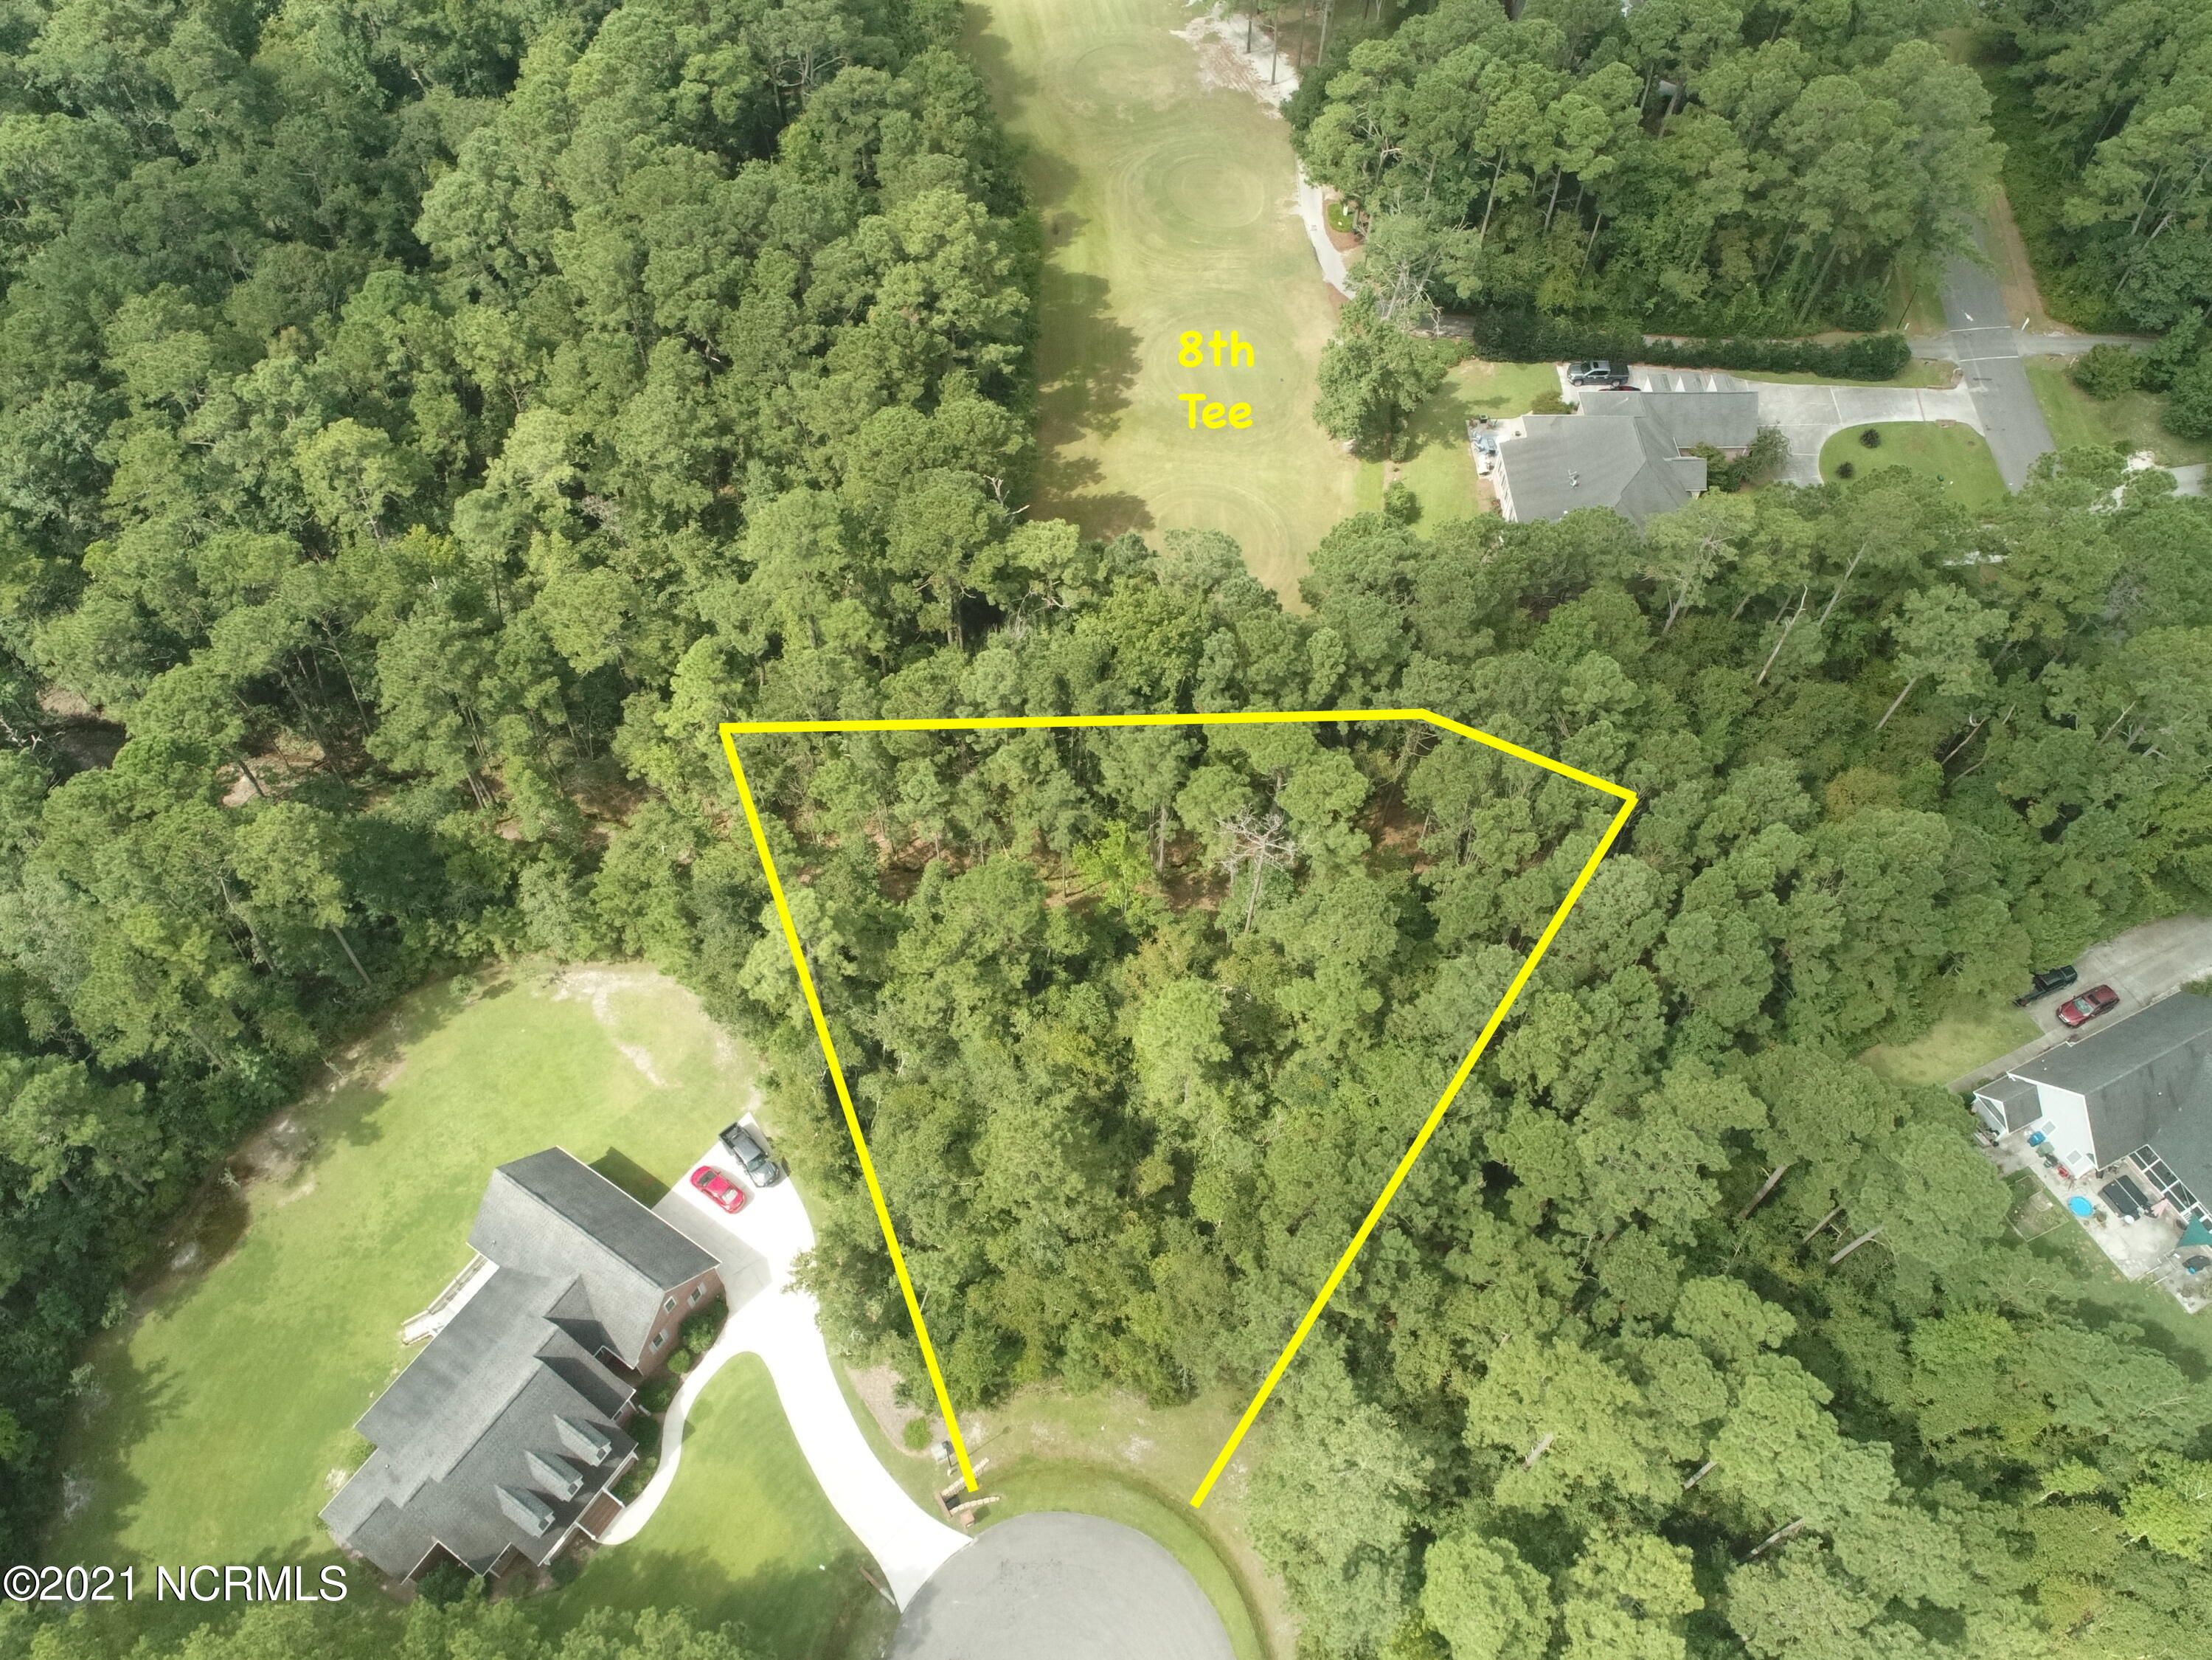 This lot is located in the Golfing community of North Shore Country Club. It's wooded so you can clear as much as you want to build your dream home! It backs up to the 8th Tee for your golfing pleasure! You are close to the beach, shopping and the MARSOC & Sneads Ferry gates to MCB Camp LeJeune. If the buyer wants to transfer the golf membership buyer will have to pay the $1,500 transfer fees and then pay the monthly fees associated with the golf membership.